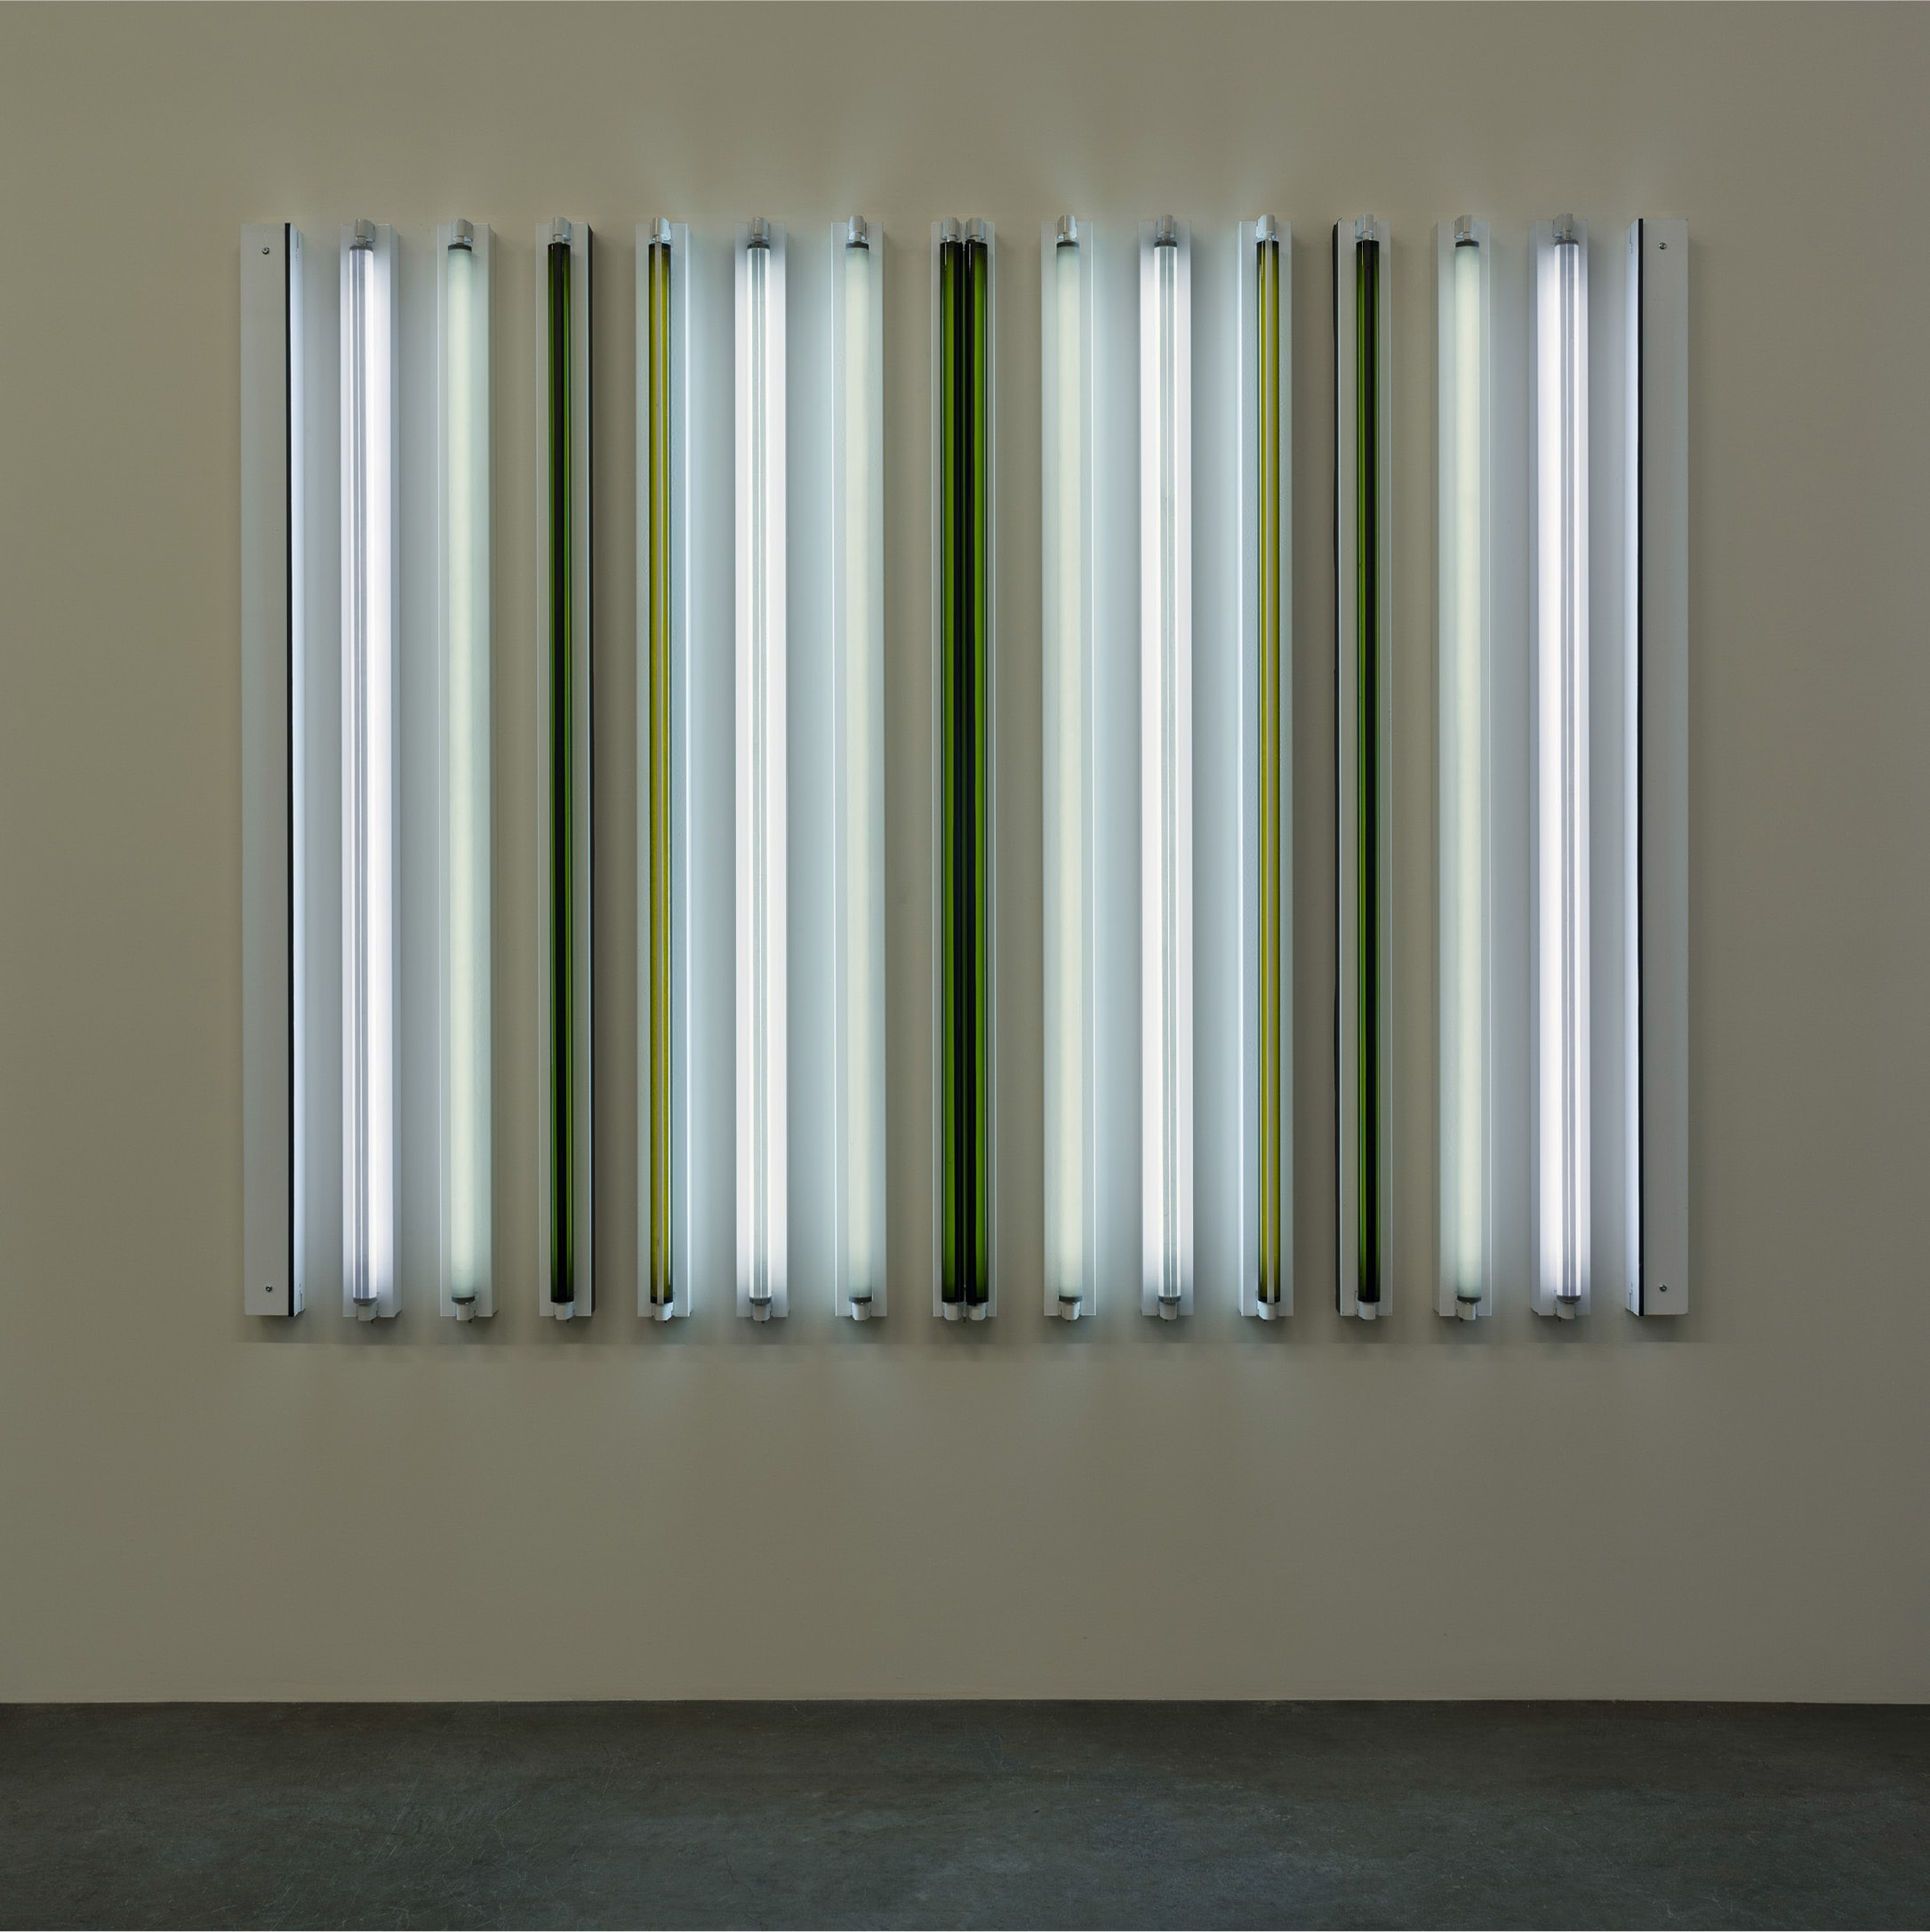 "<span class=""link fancybox-details-link""><a href=""/exhibitions/160/works/artworks14578/"">View Detail Page</a></span><div class=""artist""><strong>ROBERT IRWIN</strong></div><div class=""title""><em>Sonora #15 x 6´</em>, 2015</div><div class=""medium"">light, shadow, reflection, color<br></div><div class=""dimensions"">72 1/8 x 94 1/2 x 4 3/4 in<br>183 x 240 x 11 cm</div>"